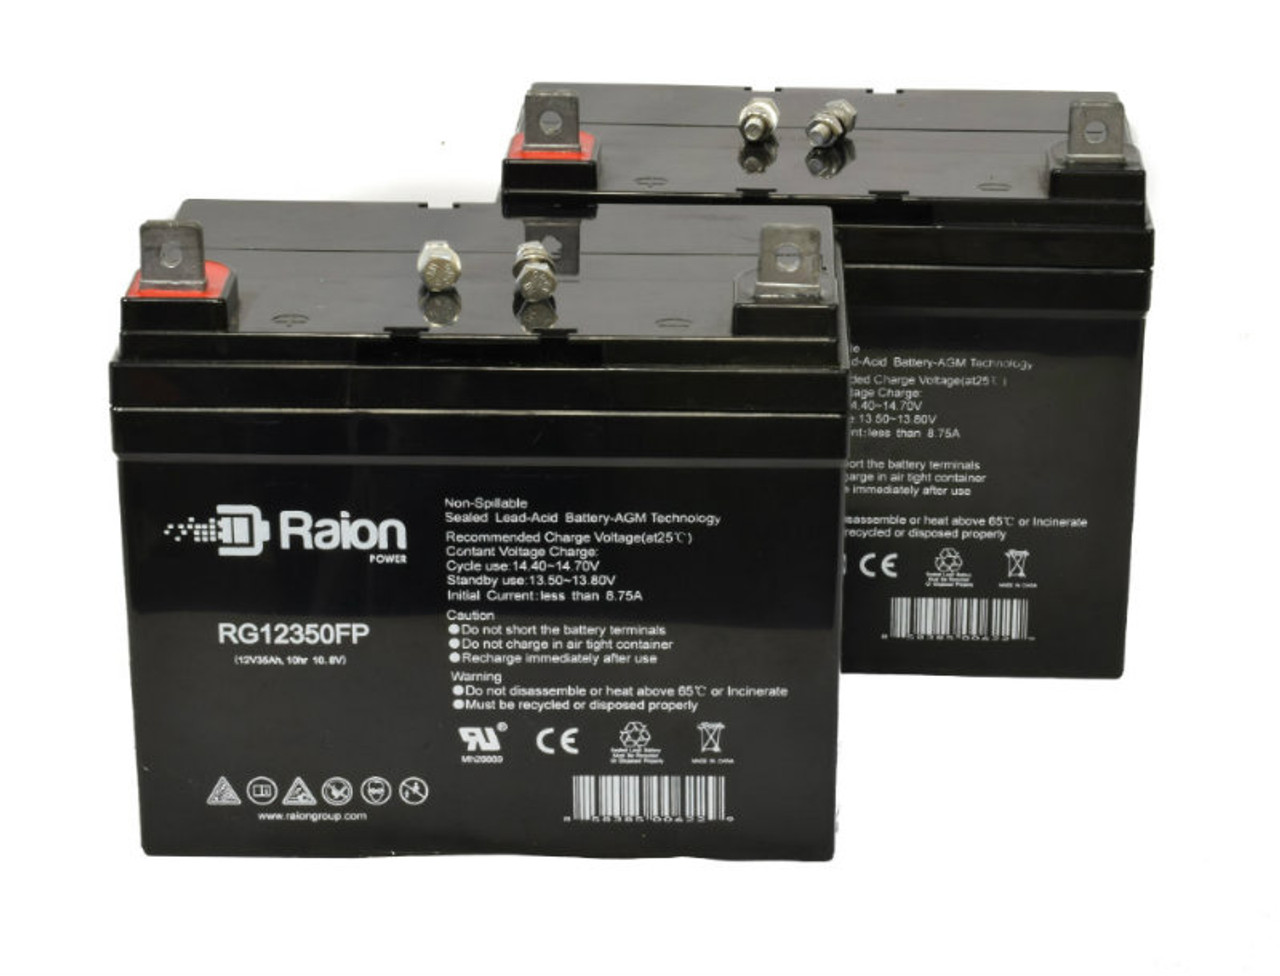 Raion Power RG12350FP Replacement Wheelchair Battery For Merits Pioneer 1 S142 (2 Pack)